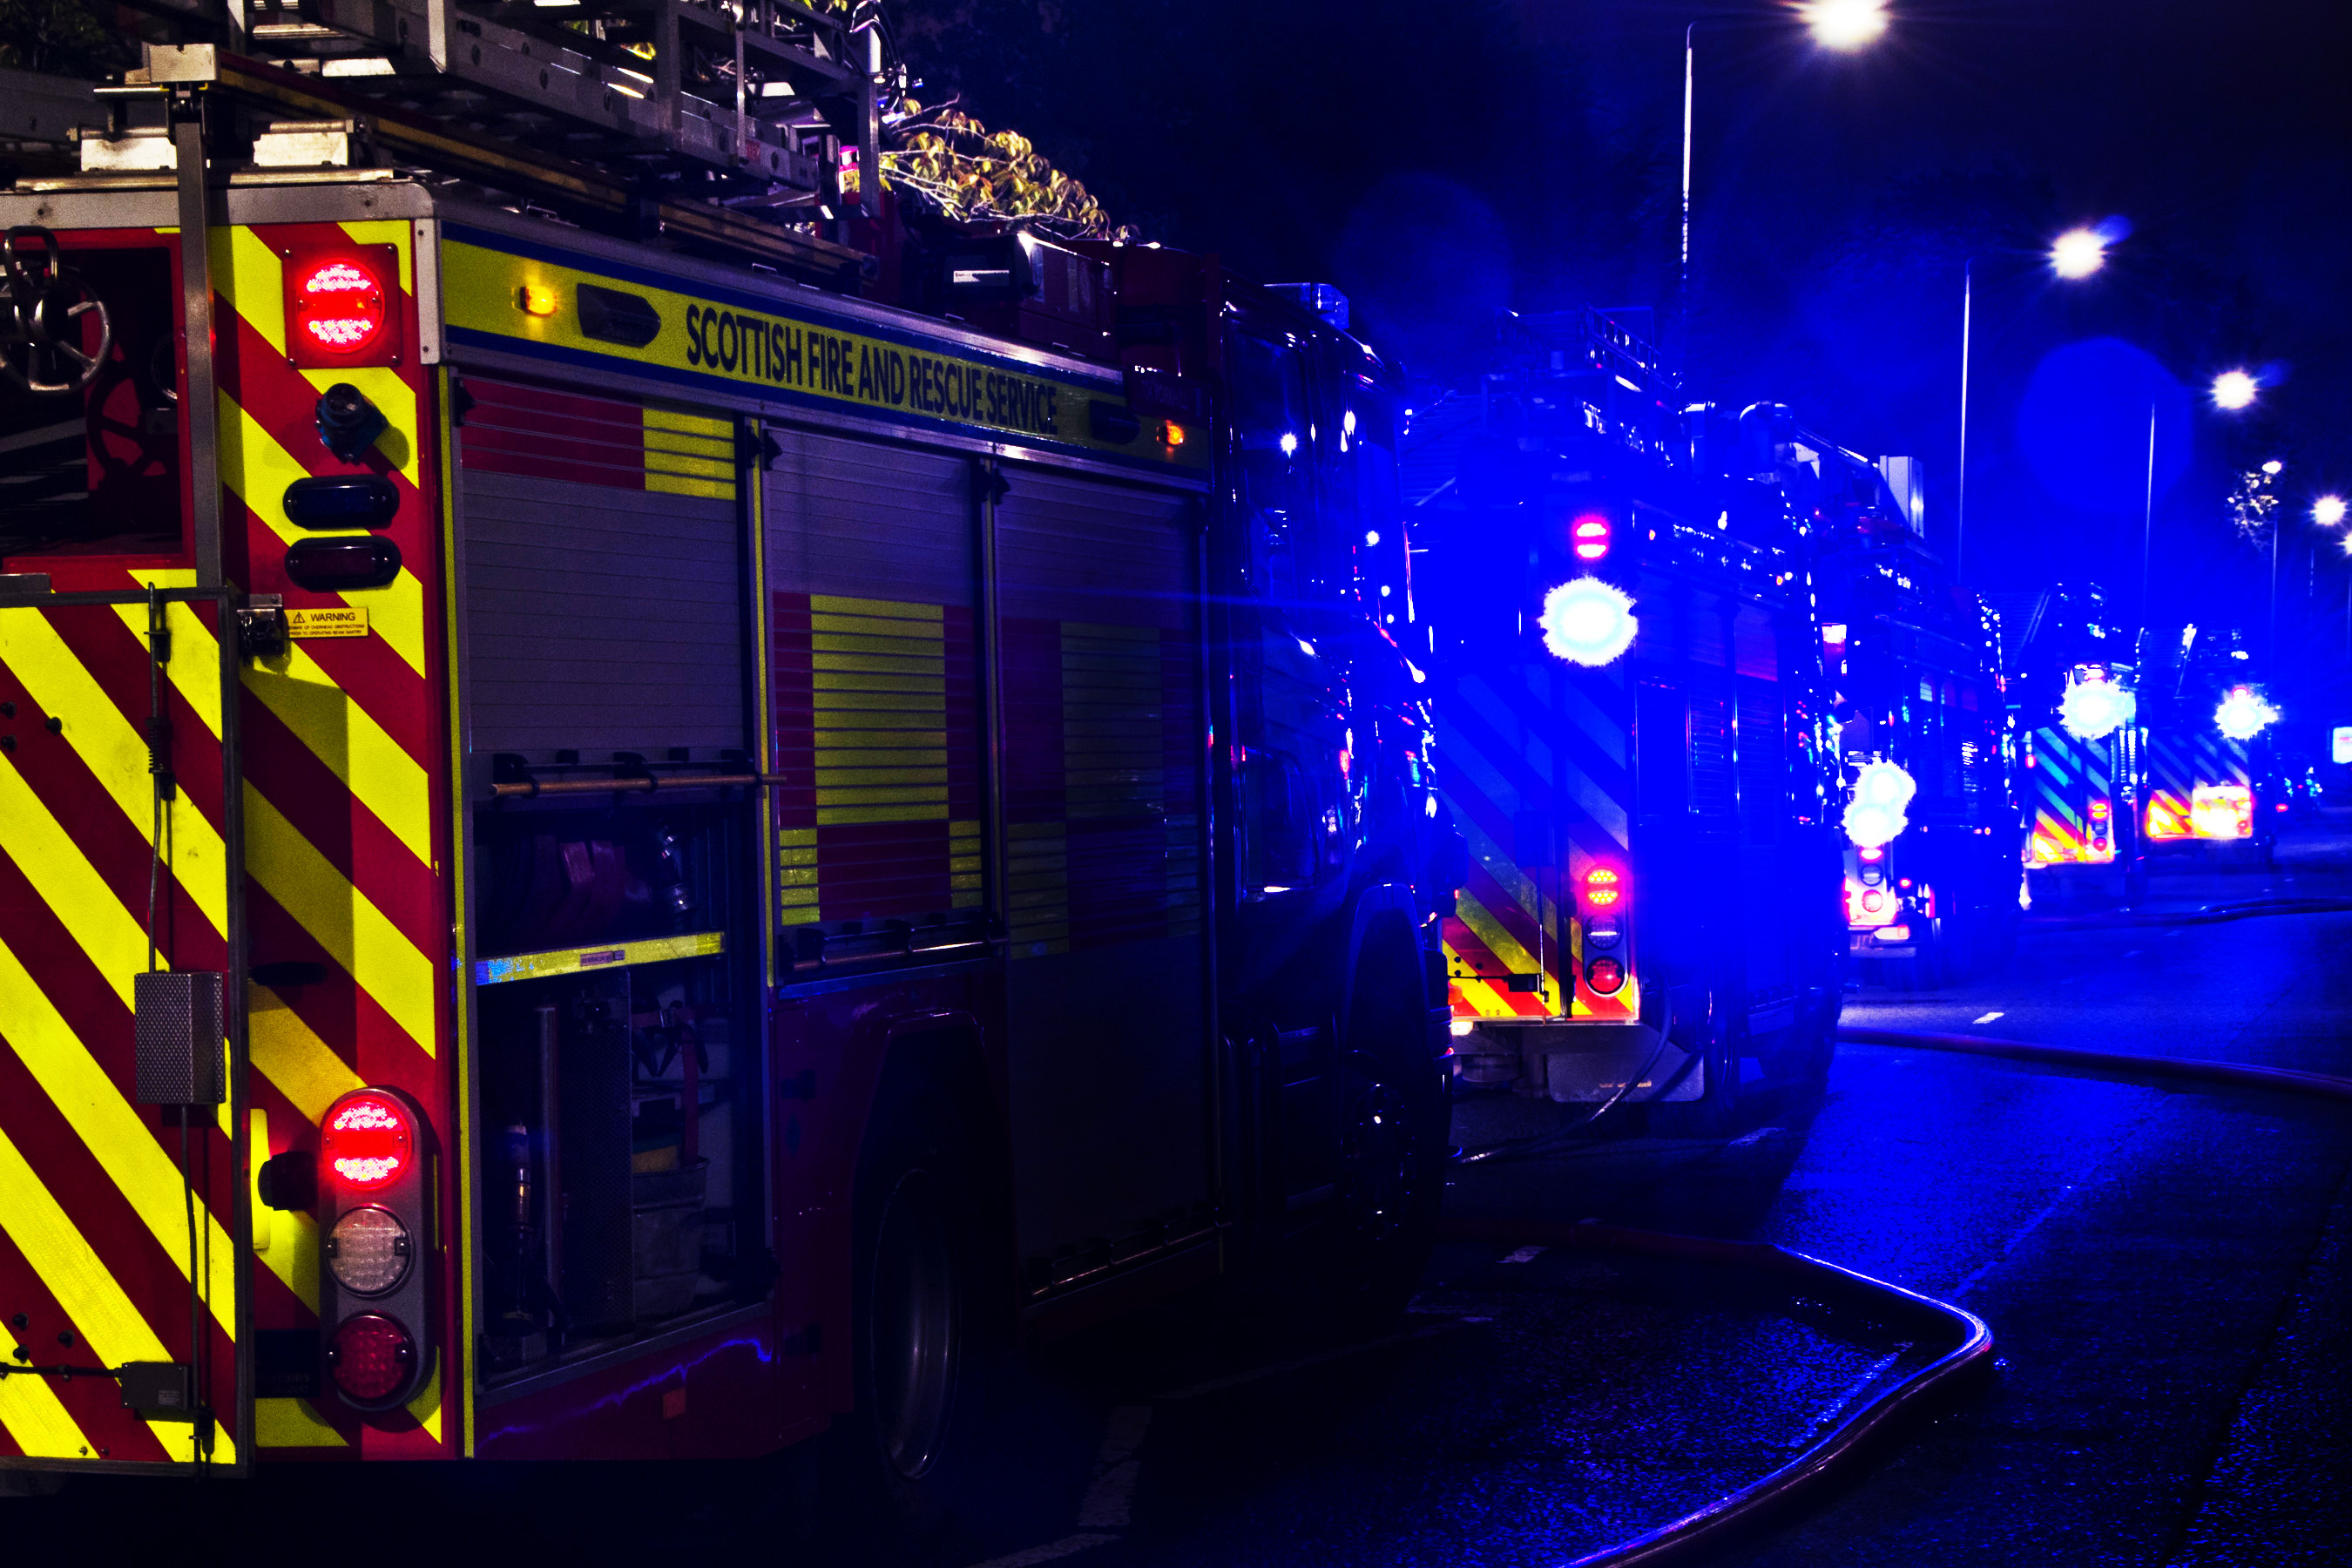 Line of fire engines, blue lights, appliances, night